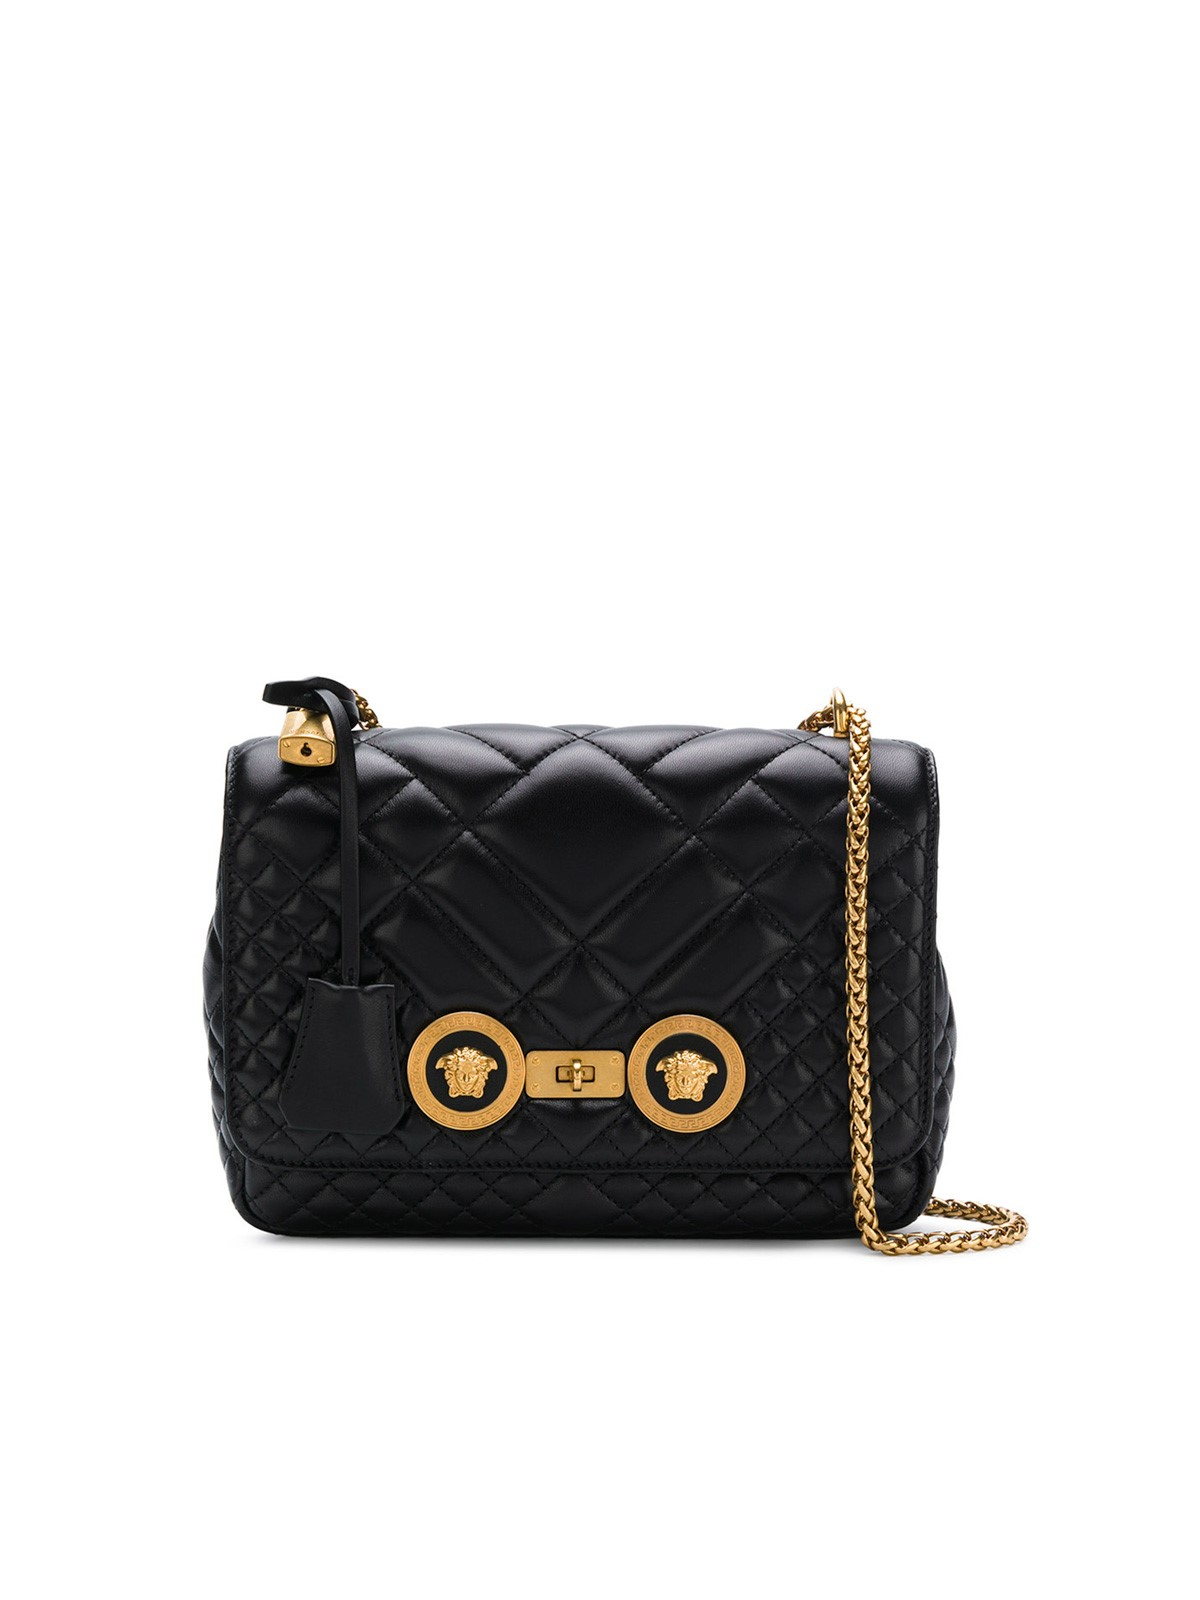 b13336aeb6d0 versace QUILTED LEATHER BAG available on montiboutique.com - 22879